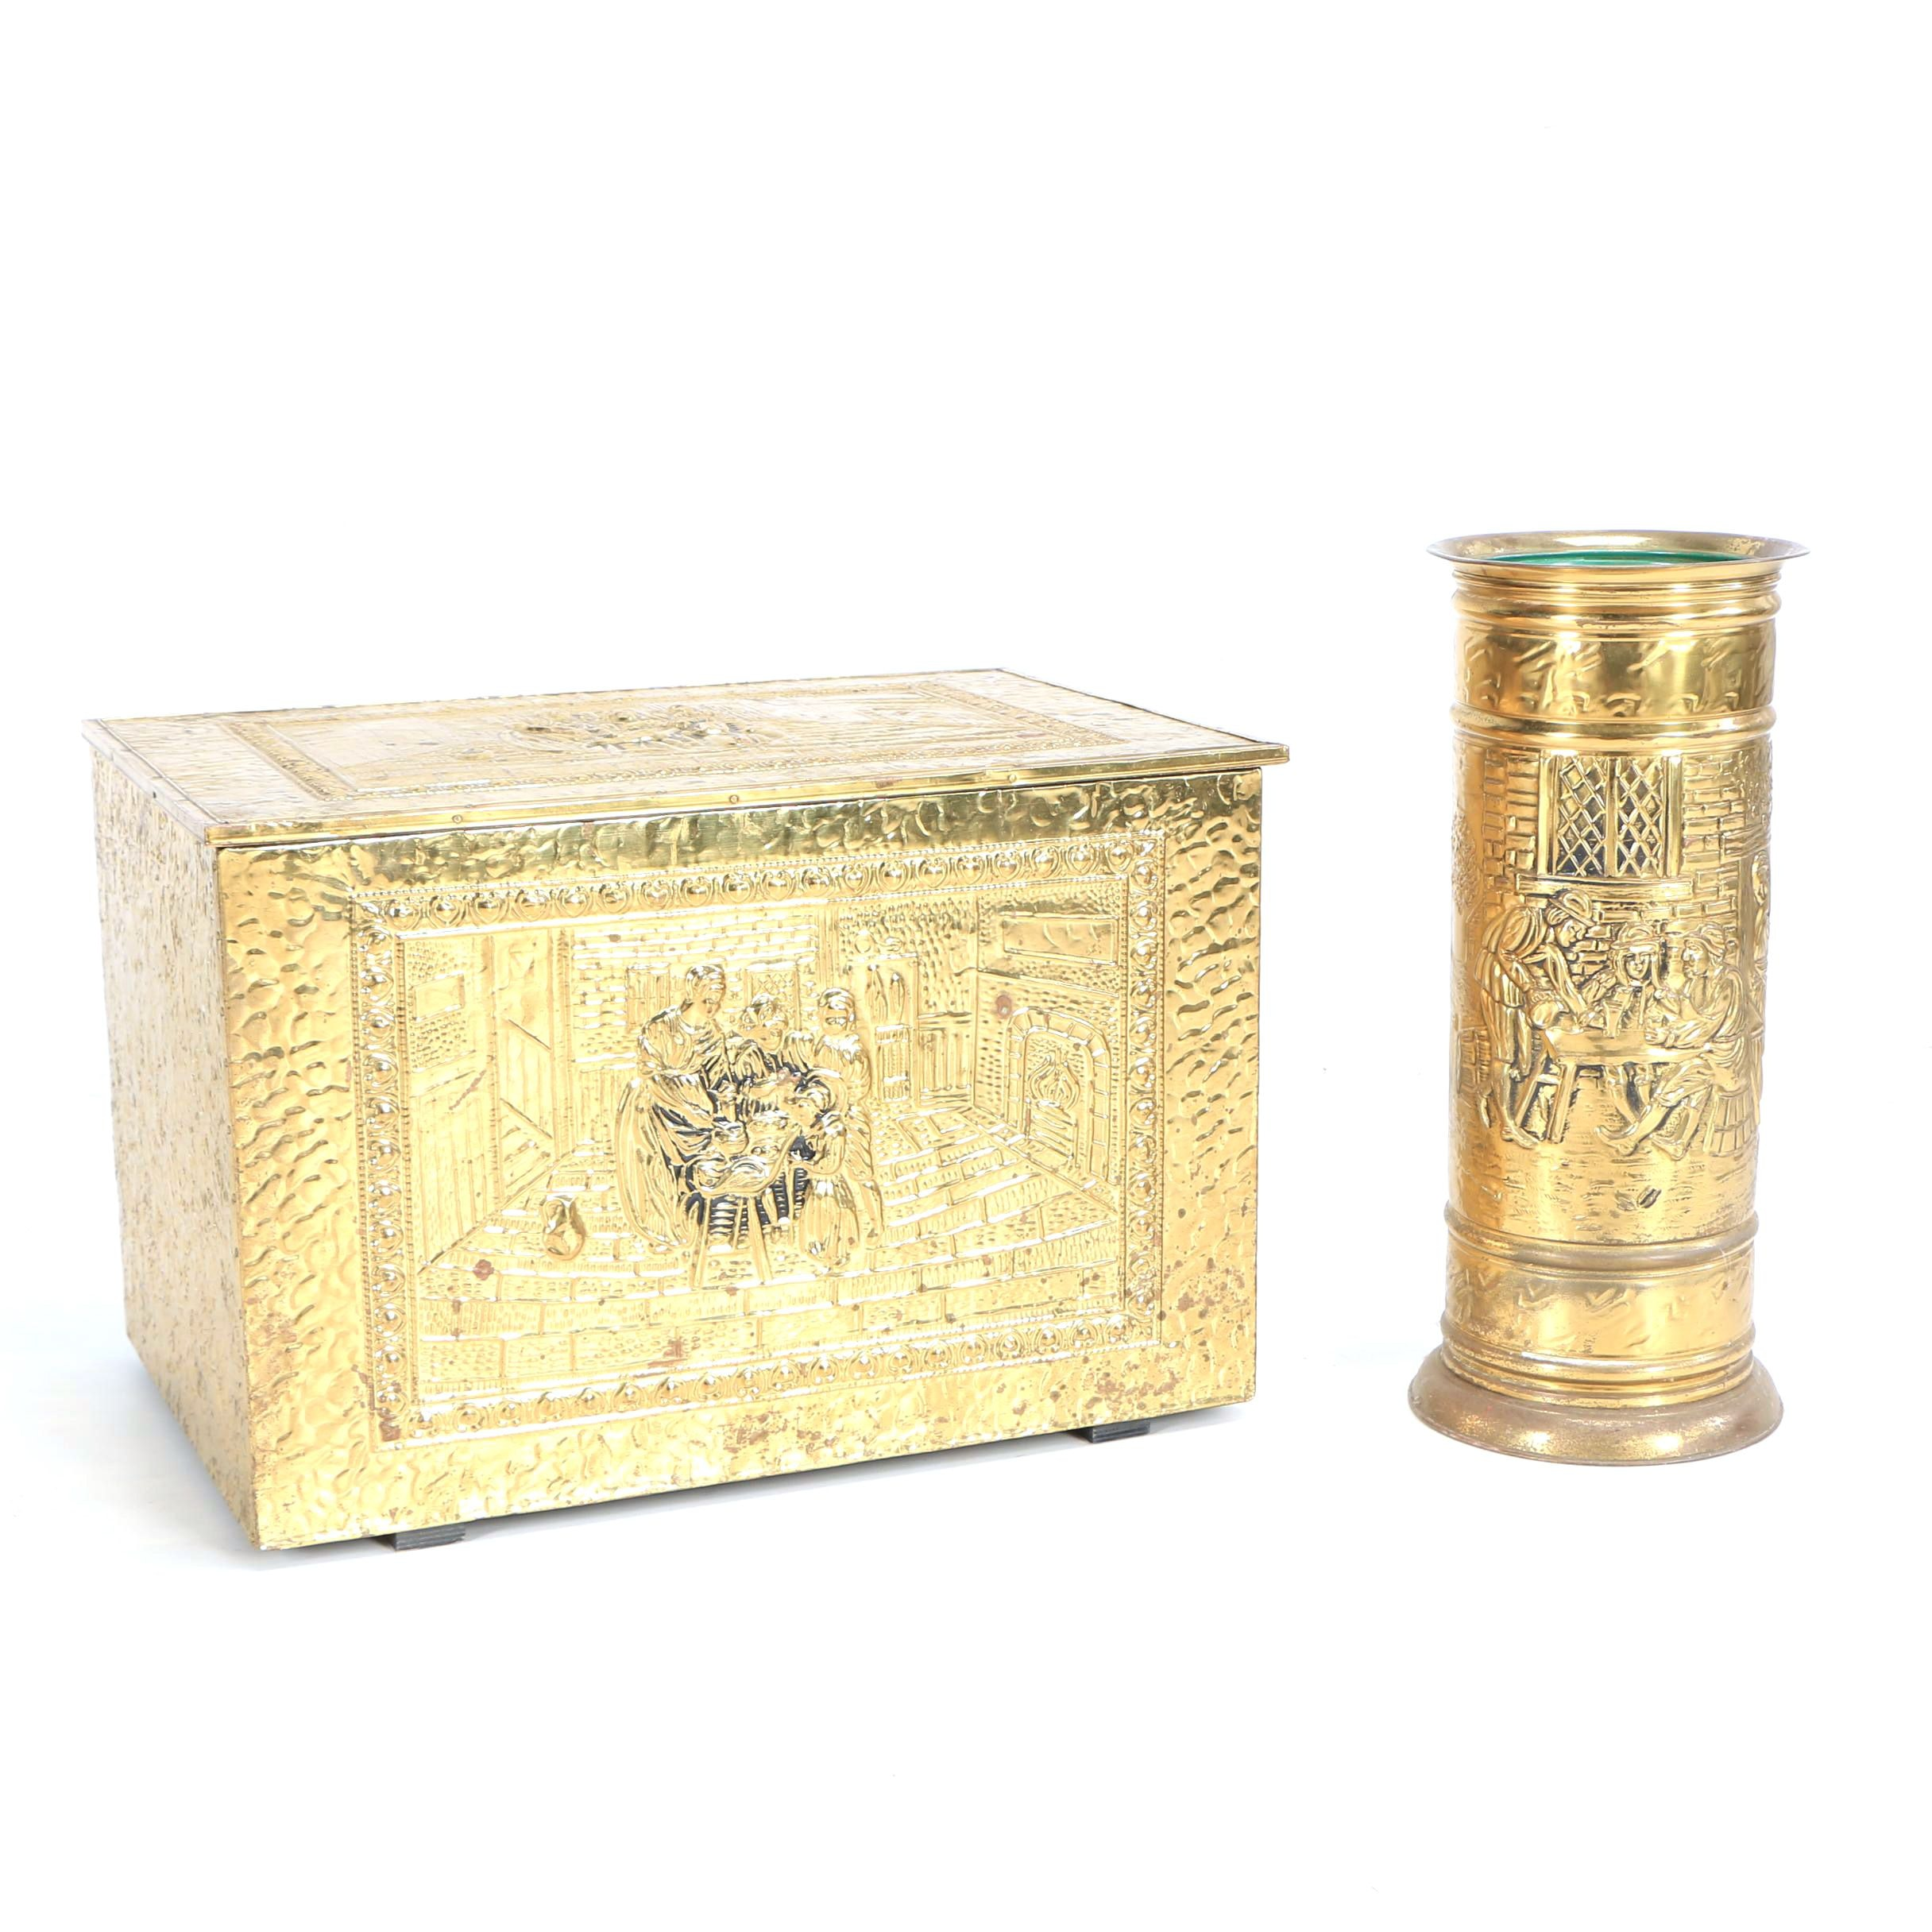 Vintage Umbrella Stand and Storage Chest with Repoussé Genre Scenes